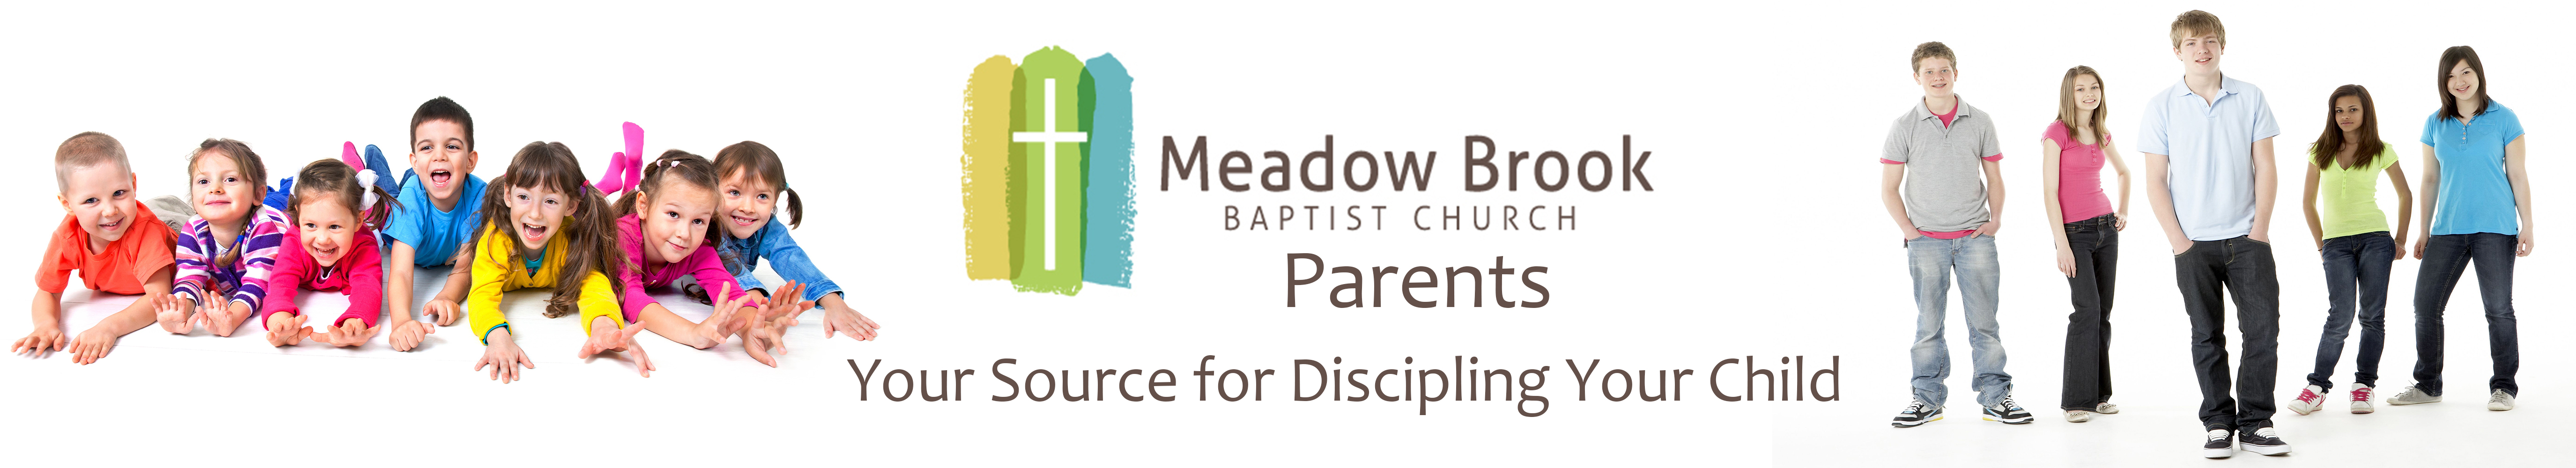 Meadow Brook Baptist Church Parents